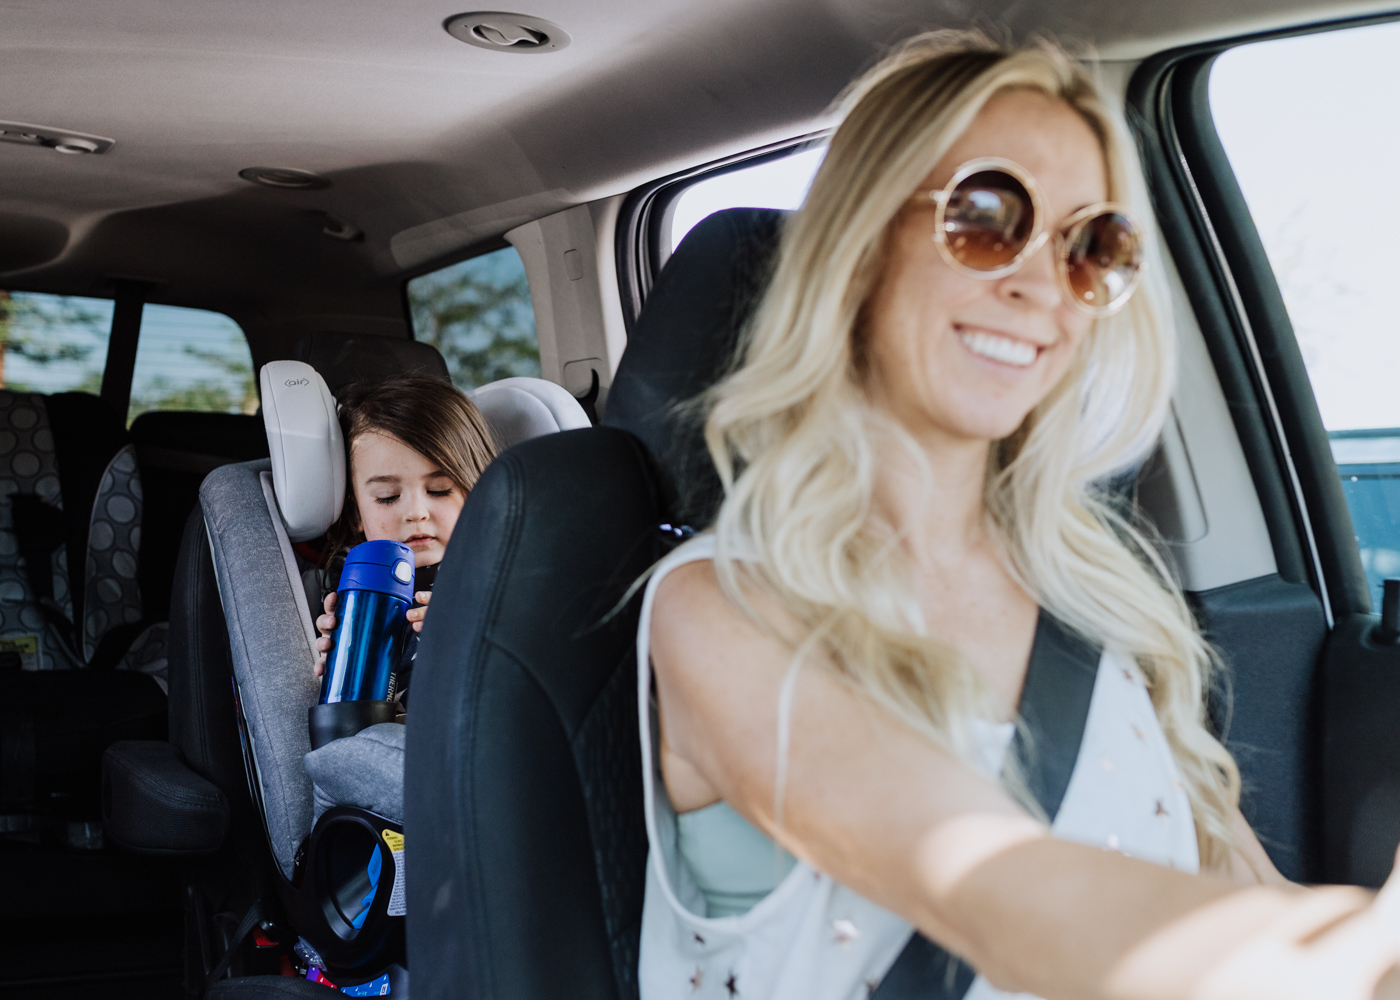 headed out for an everyday adventure with my little man in his new Maxi-Cosi 5-in-one carseat | thelovedesignedlife.com #momlife #backseatride #carseat